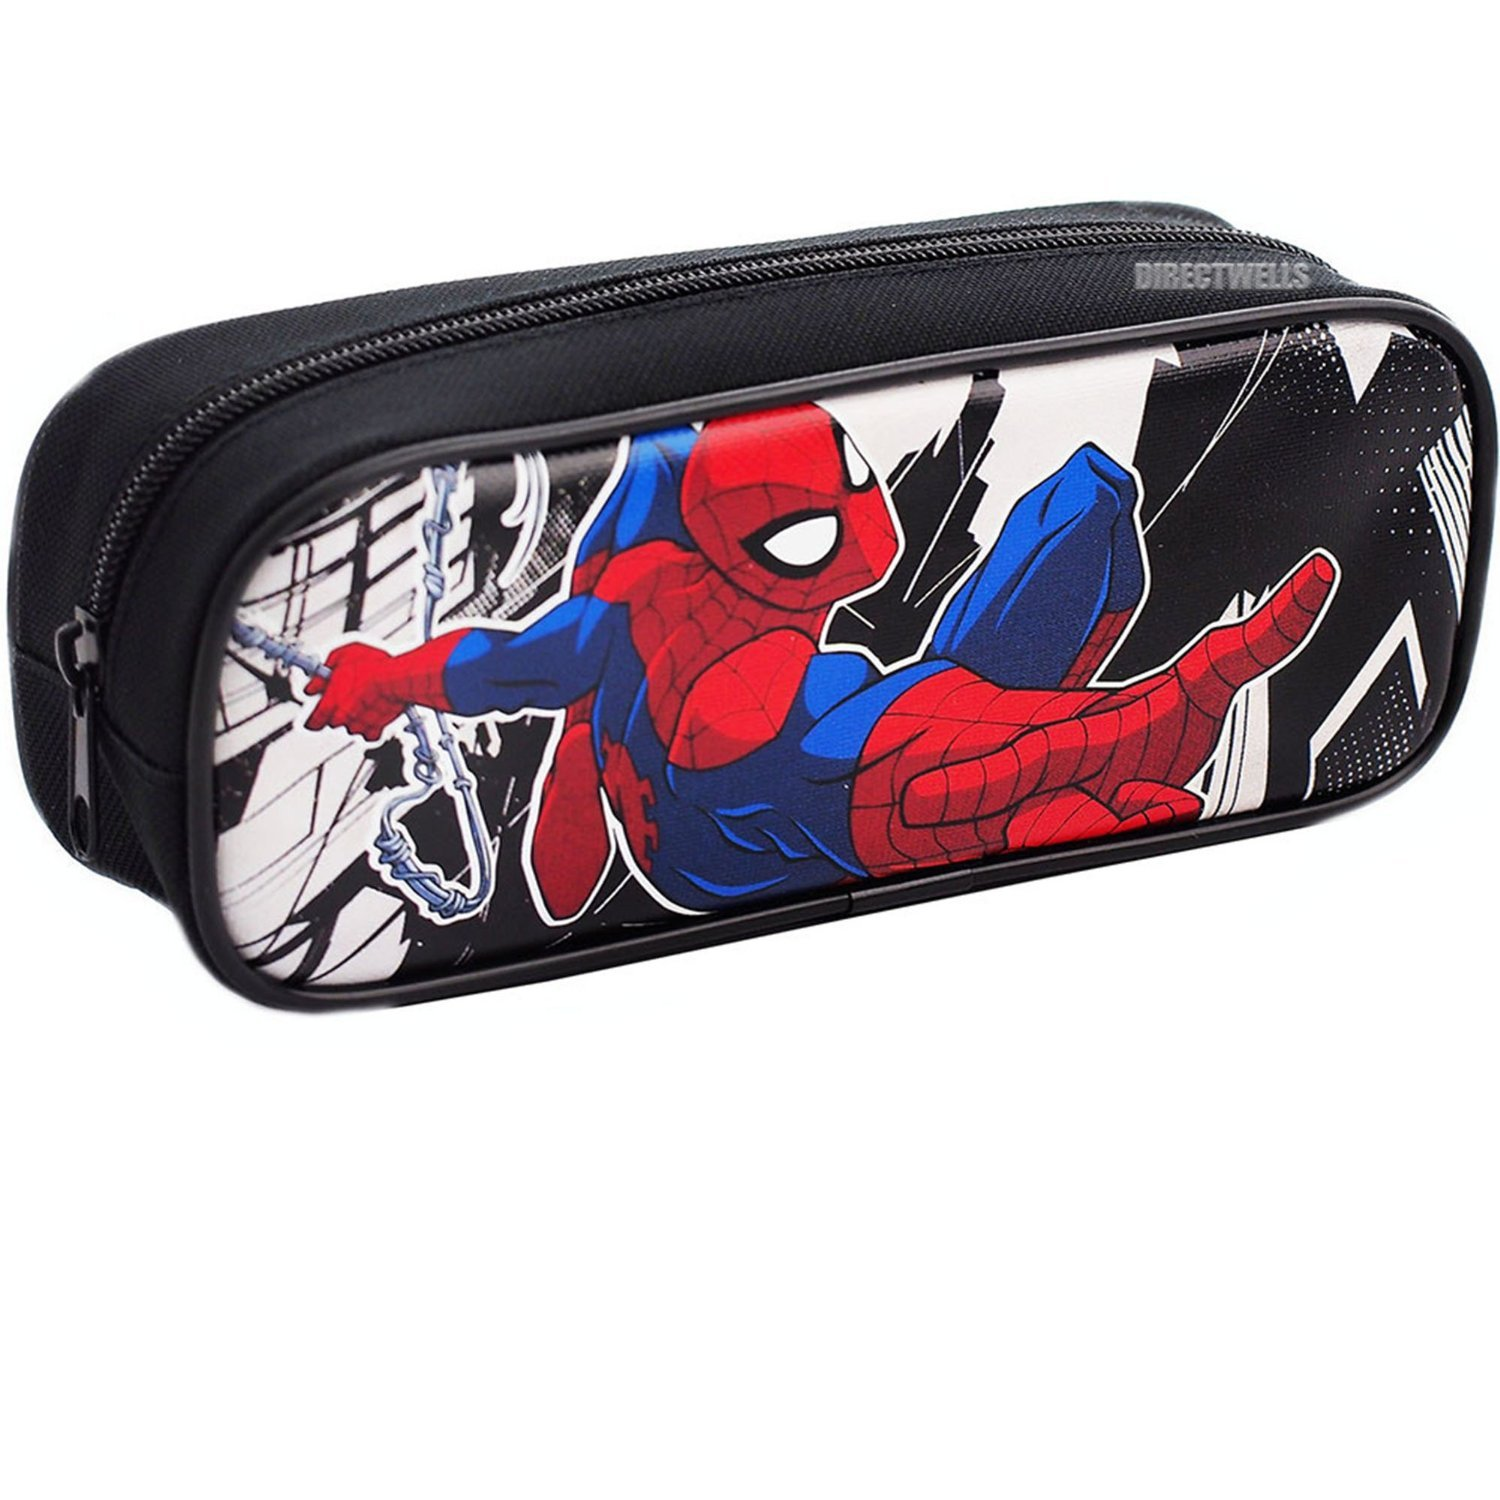 Spiderman Authentic Licensed Single Zipper Pencil Case (Black)